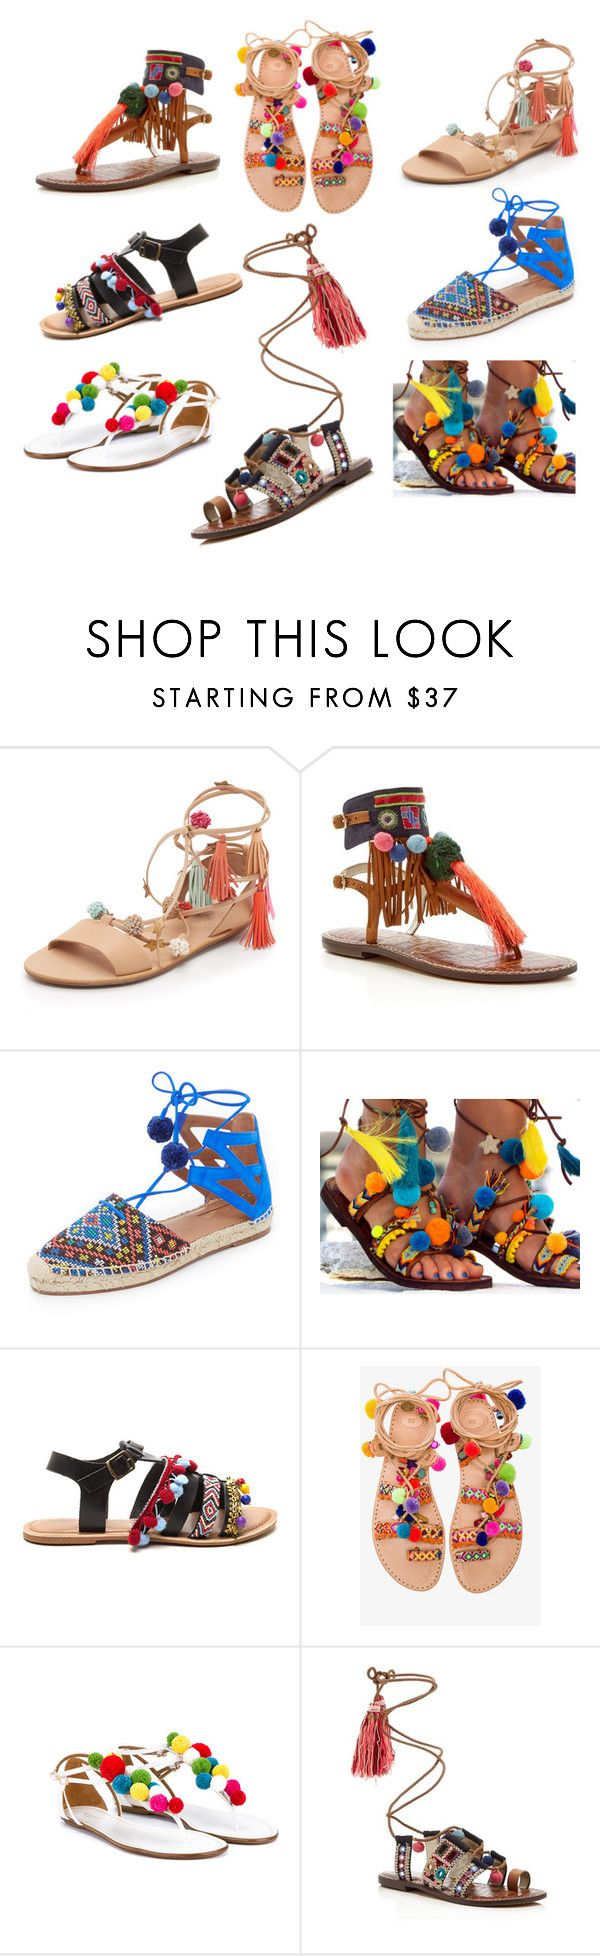 best shoes images on pinterest ladies shoes flats and